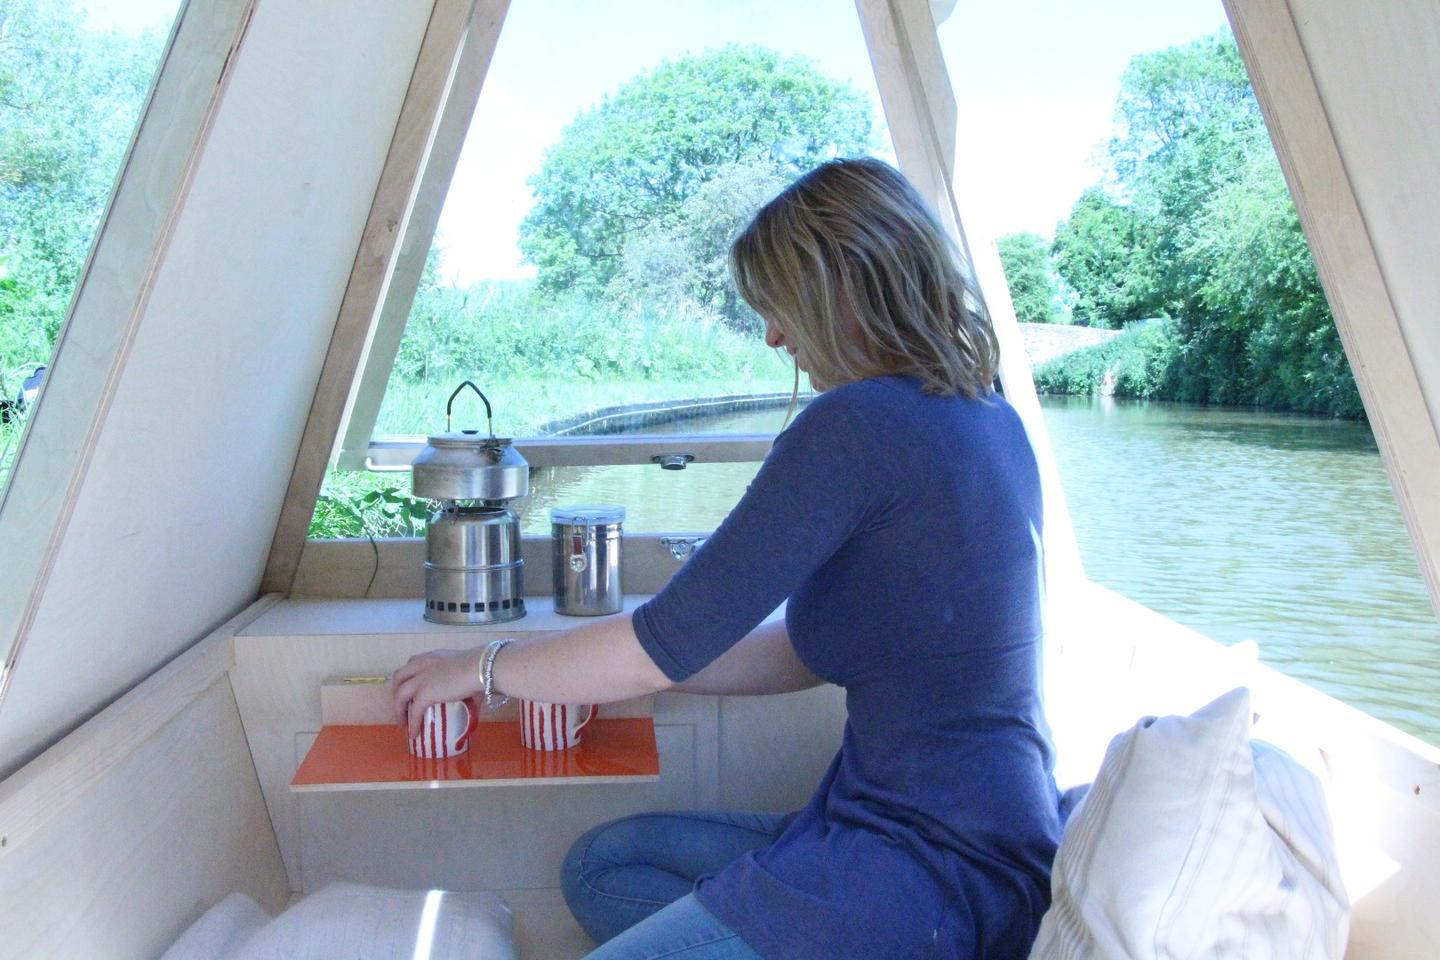 The WaterBed features a fold down side table, perfect for enjoying a cup of coffee on the canal